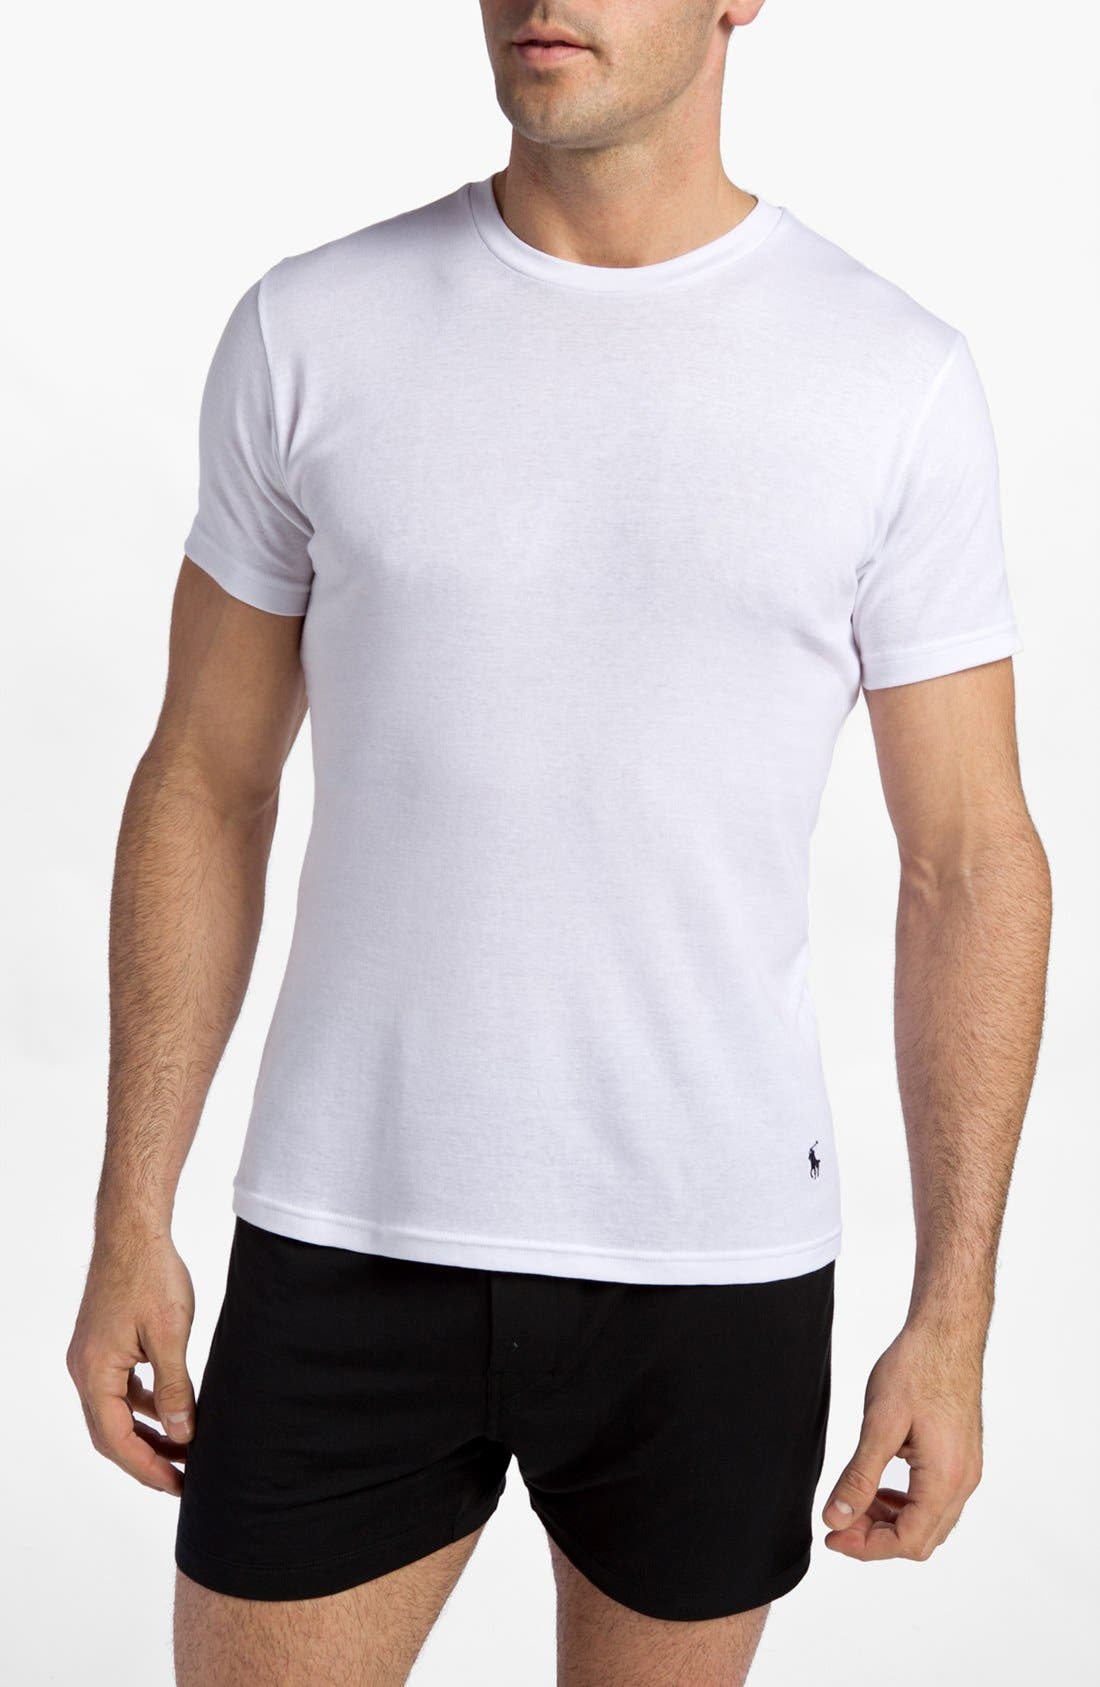 Polo Ralph Lauren 2-Pack Cotton Crewneck T-Shirt